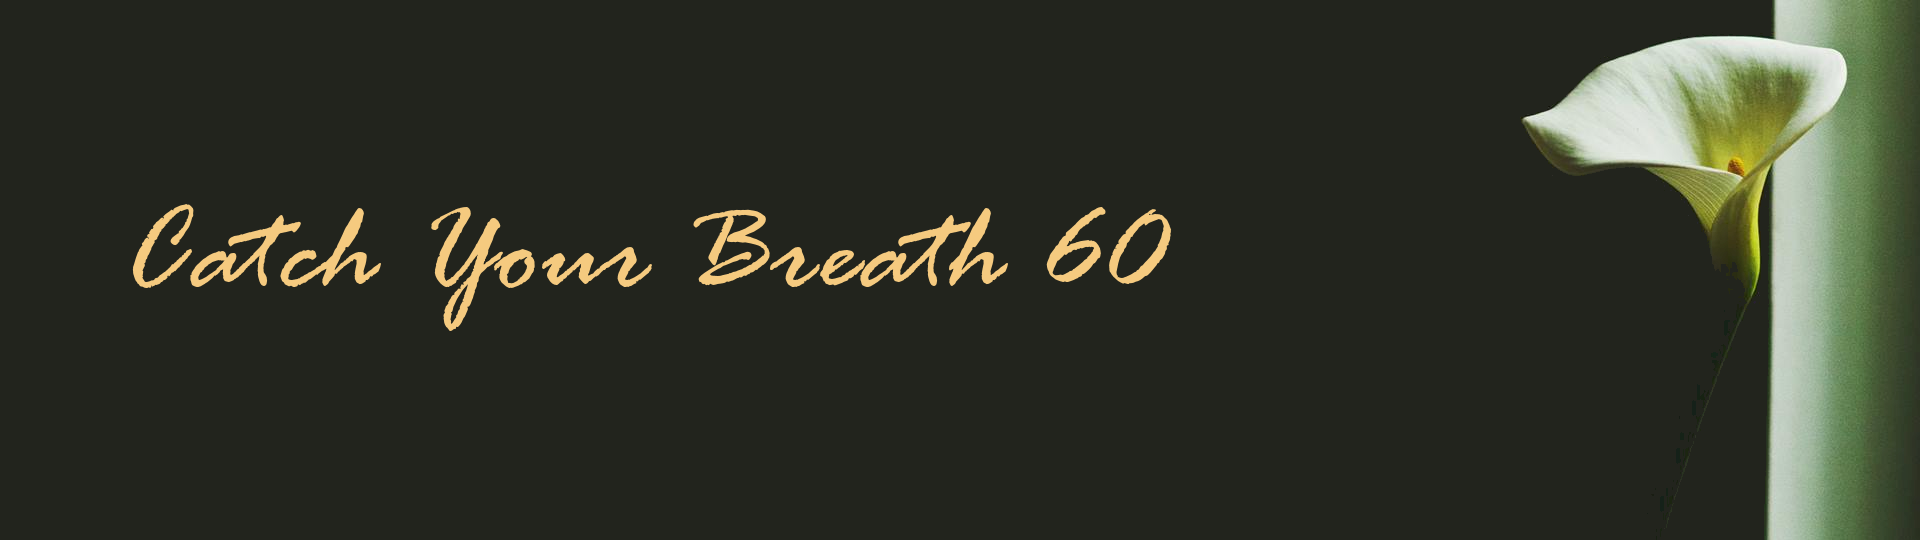 Catch Your Breath 60